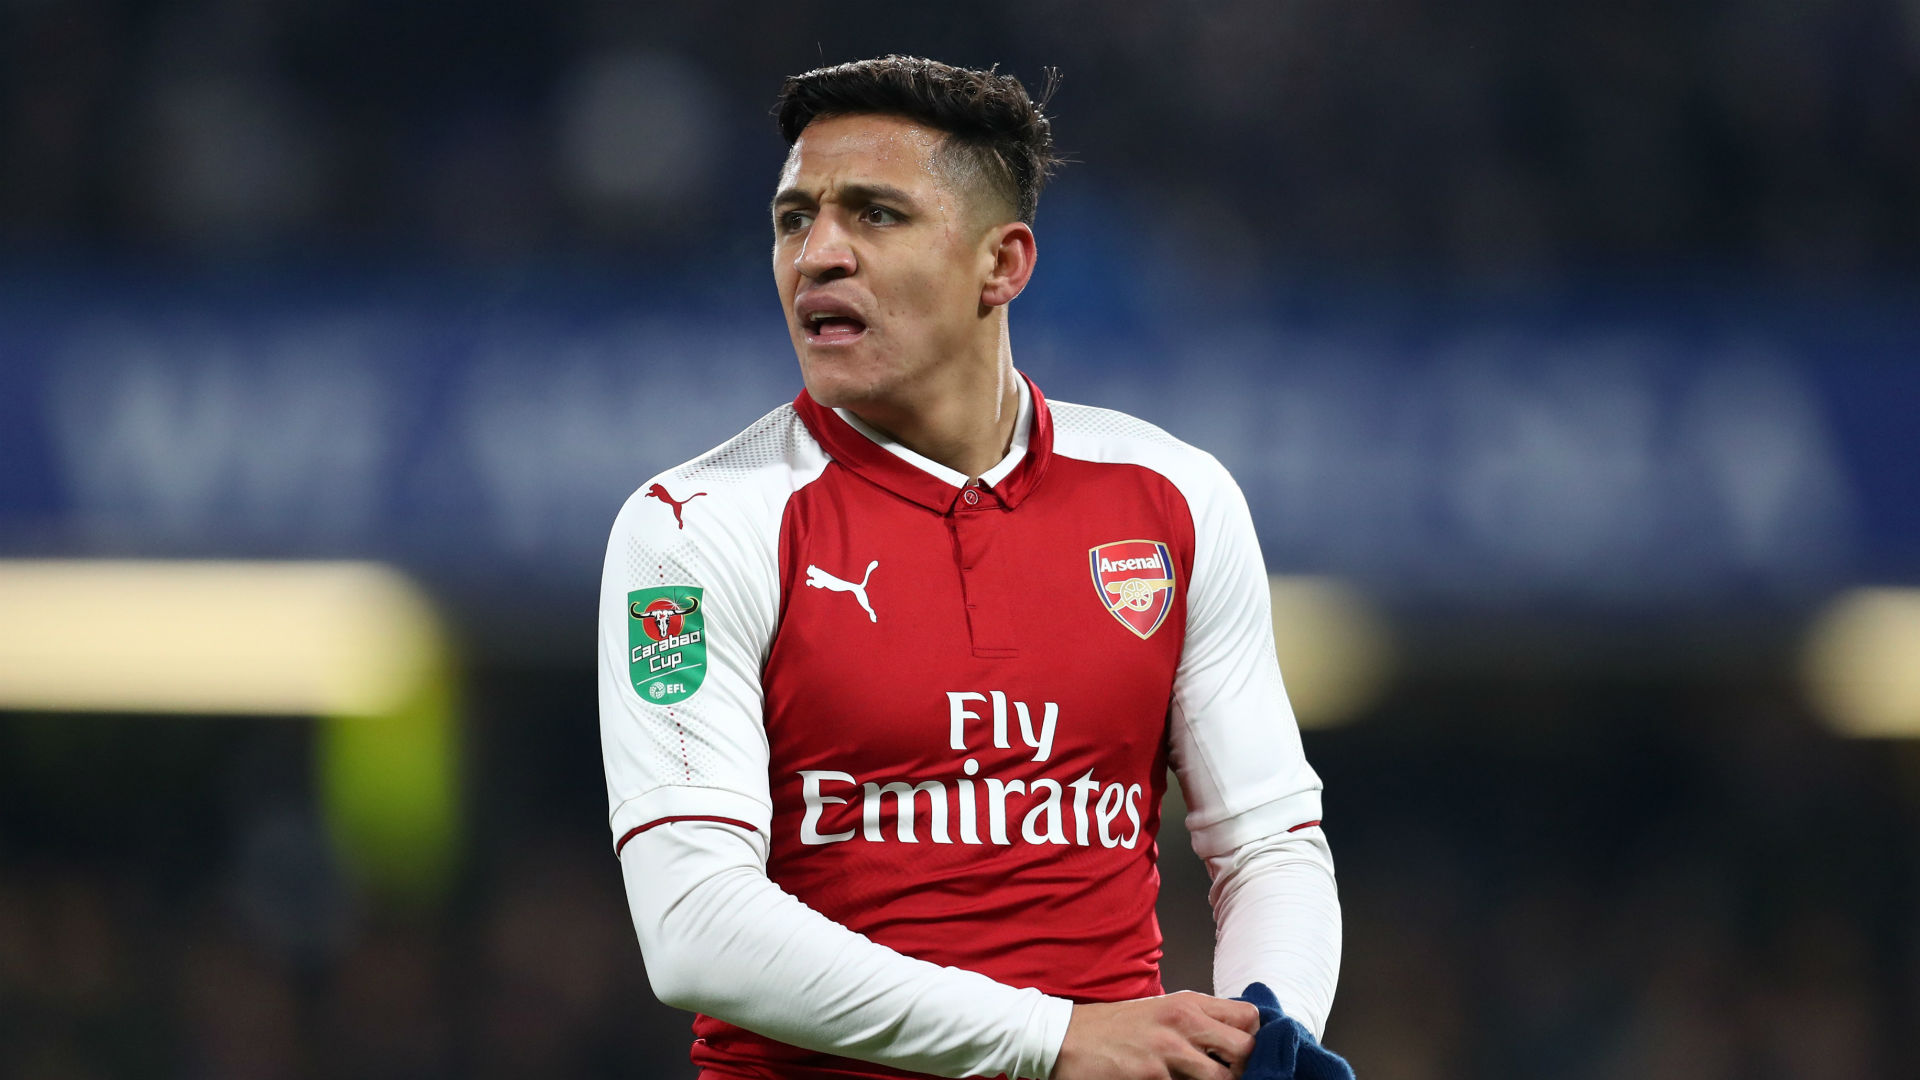 'I want him to stay for longer' – Wenger still hopeful Alexis won't depart